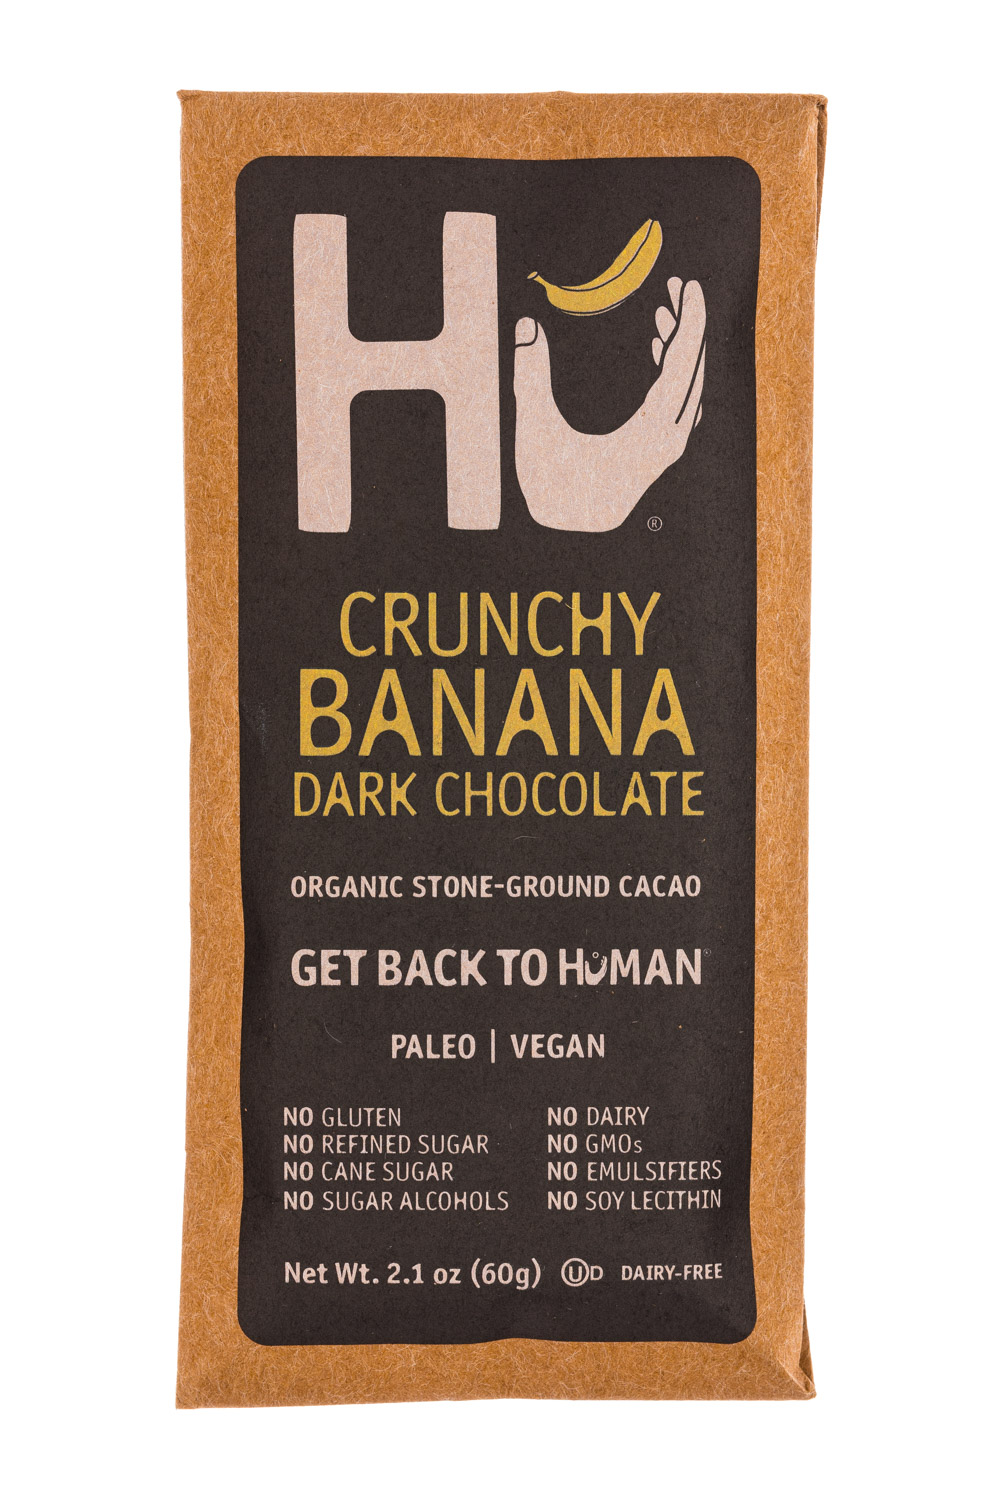 Crunchy Banana Dark Chocolate